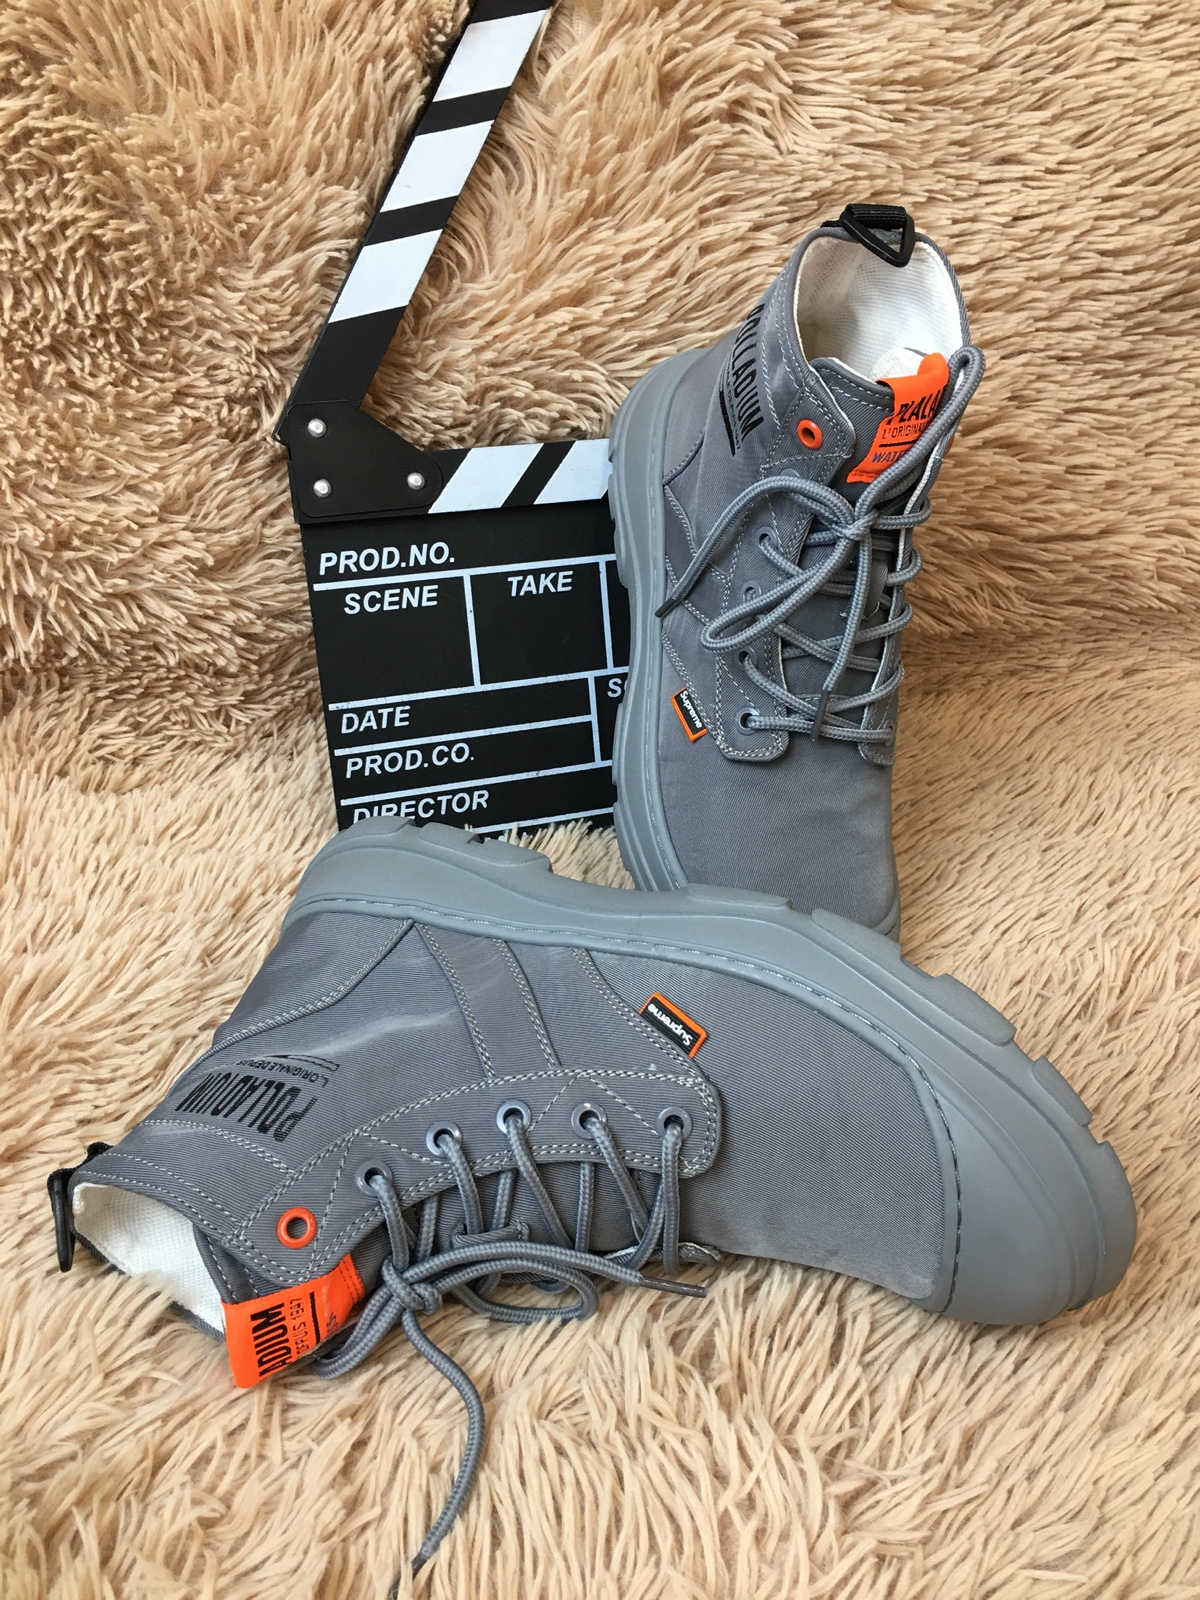 [West Asia Photo] new mens shoes, leisure shoes, sports shoes, outdoor shoes, size 38-43